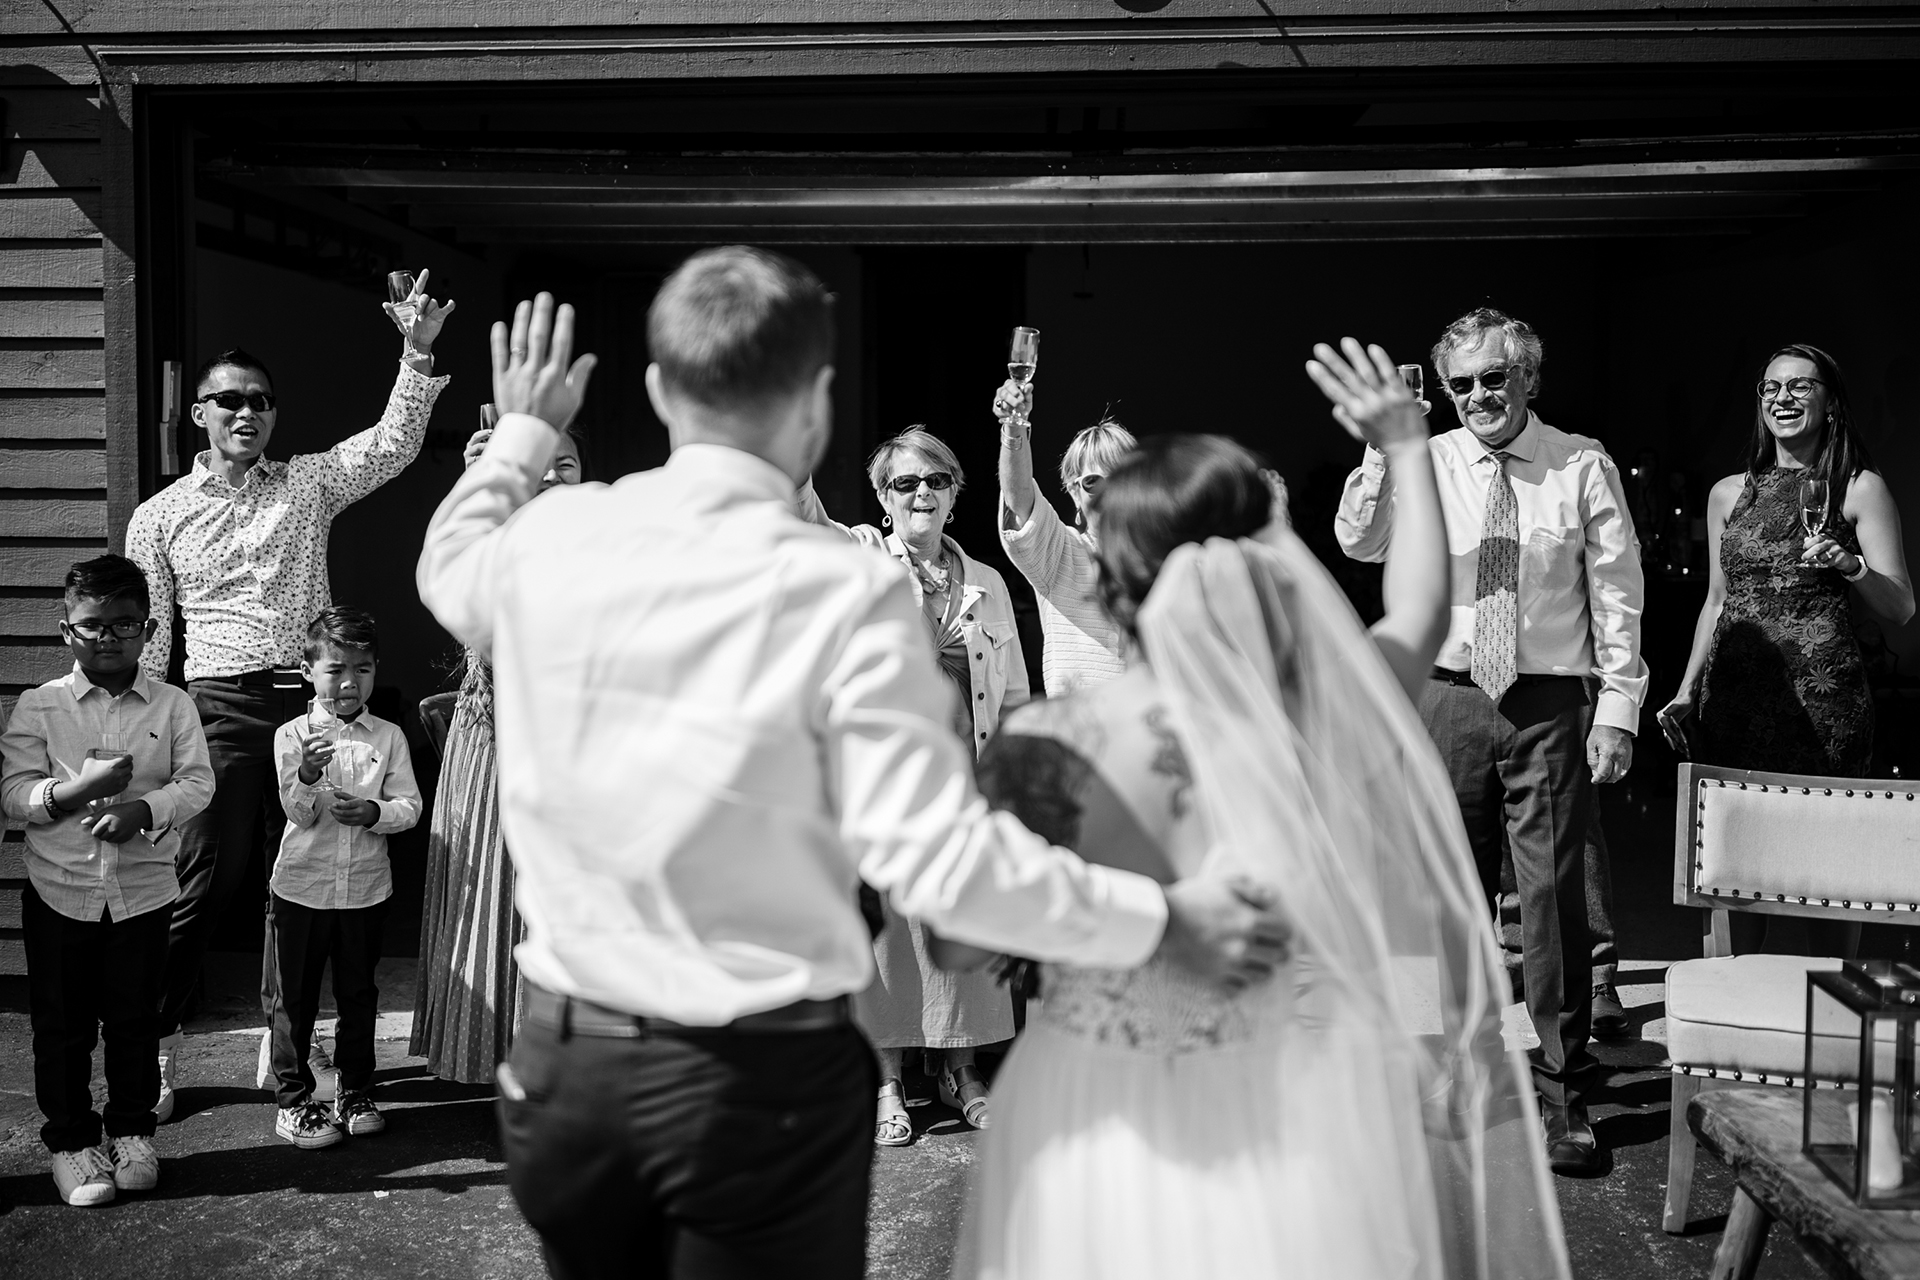 Airbnb Mammoth Lakes Rental Home Wedding Pic | Everyone cheered for the happy couple as they arrived for the celebration